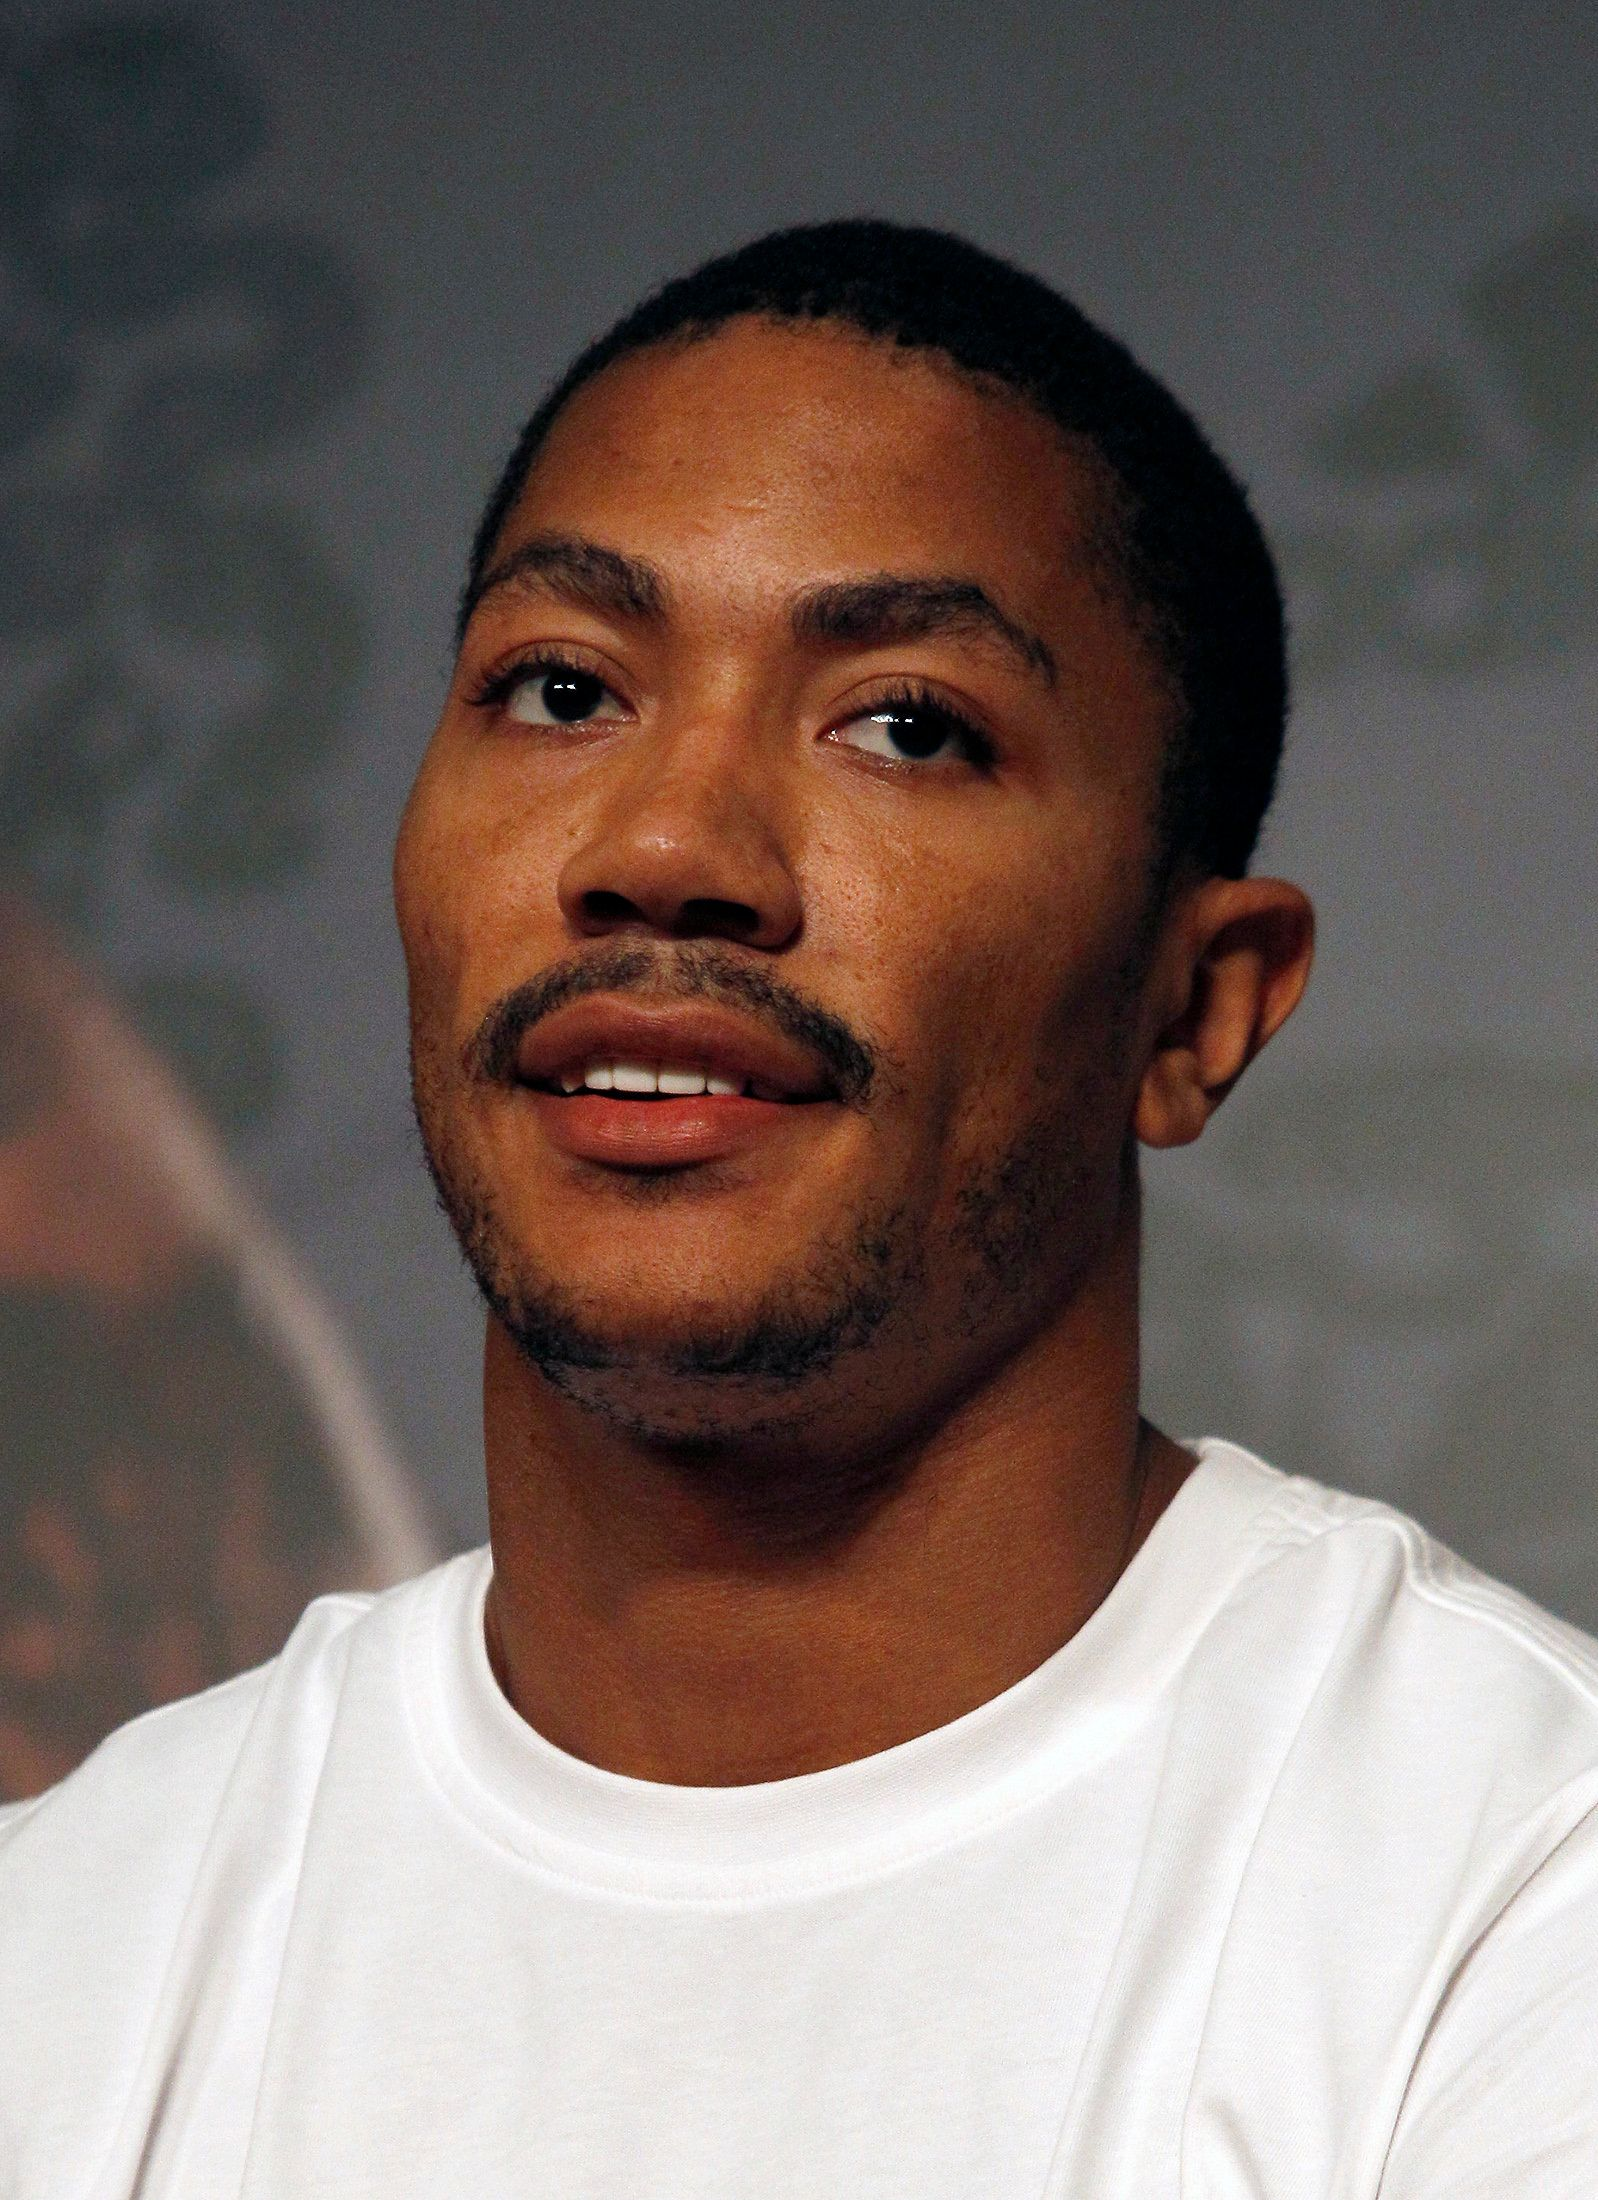 NBA basketball player Derrick Rose of the Chicago Bulls attends a news conference in Taipei August 27, 2011. Rose is on a promotional tour in Taiwan from August 27 to 28. REUTERS/Pichi Chuang (TAIWAN - Tags: SPORT BASKETBALL)